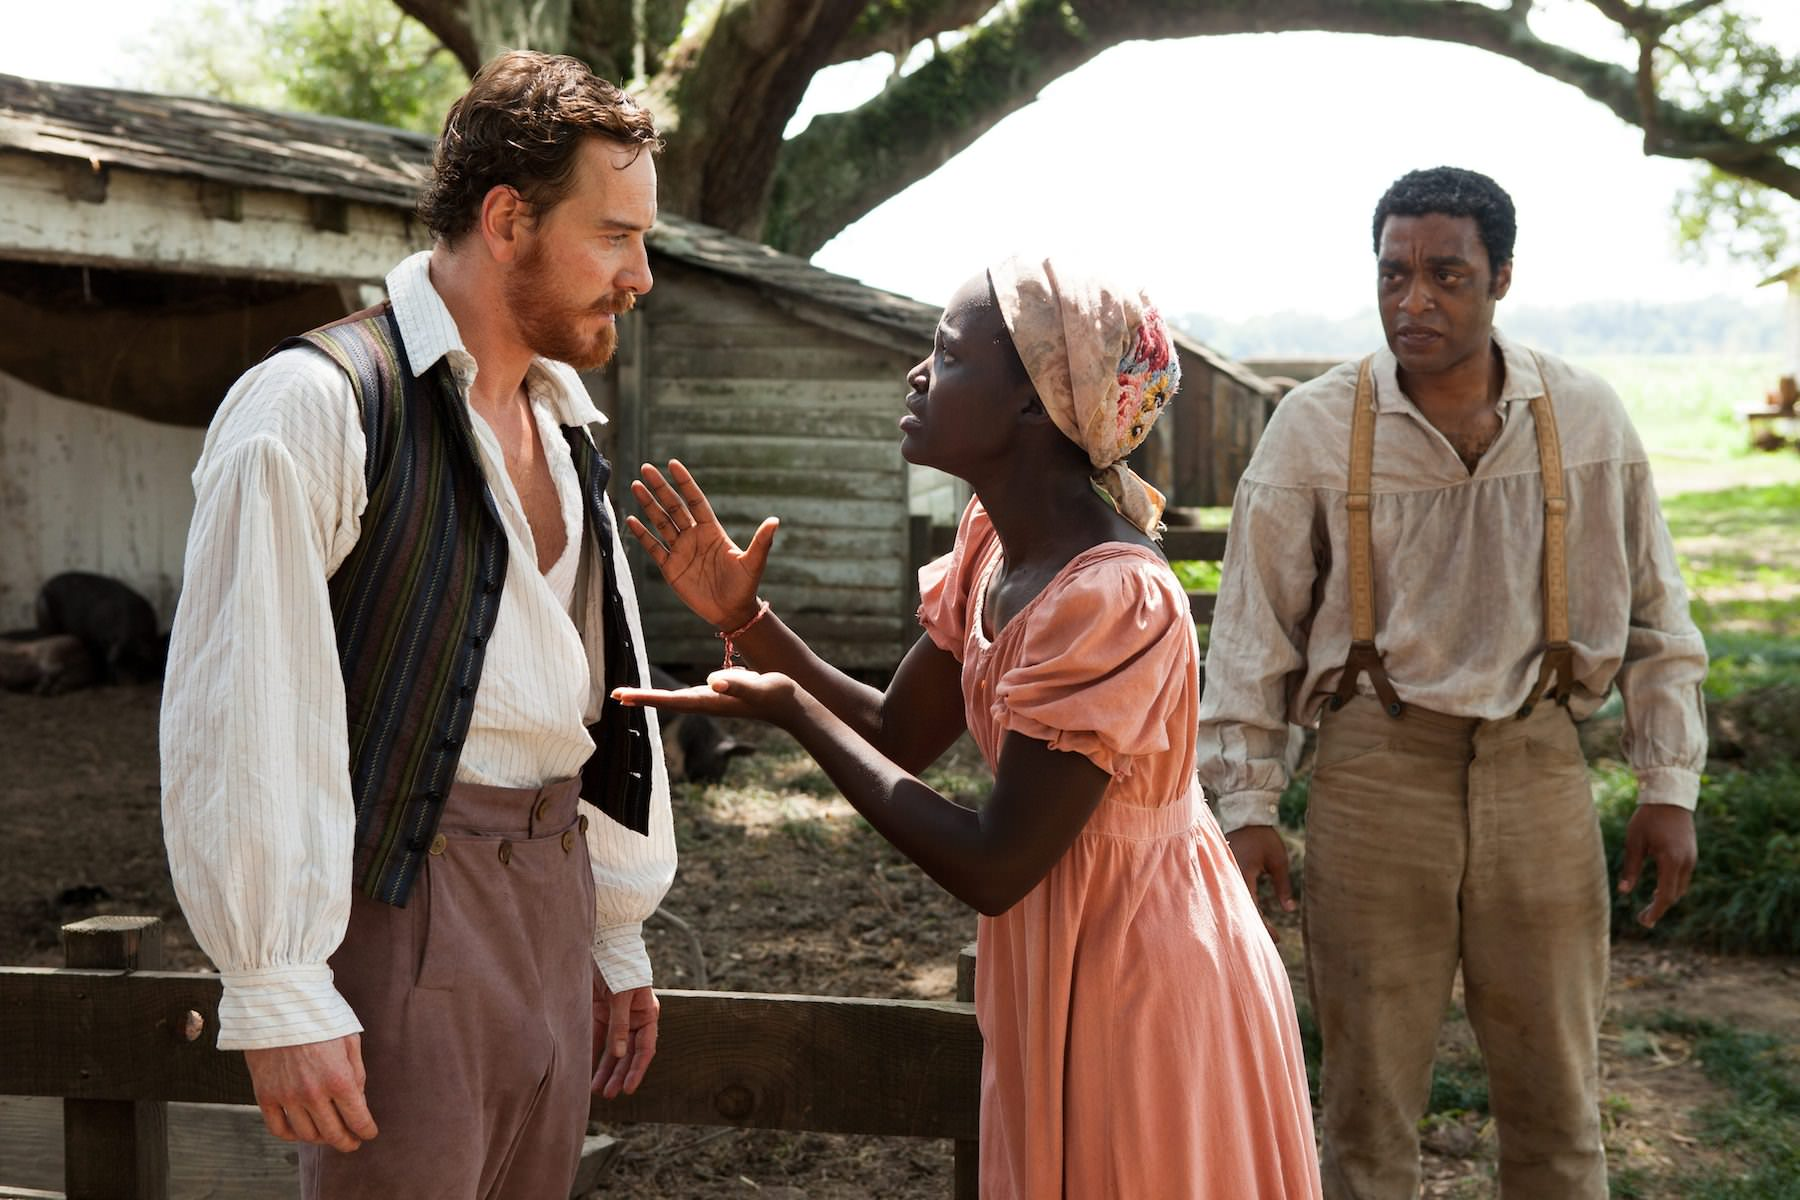 12 years a slave mcqueen fassbender ejiofor nyongo